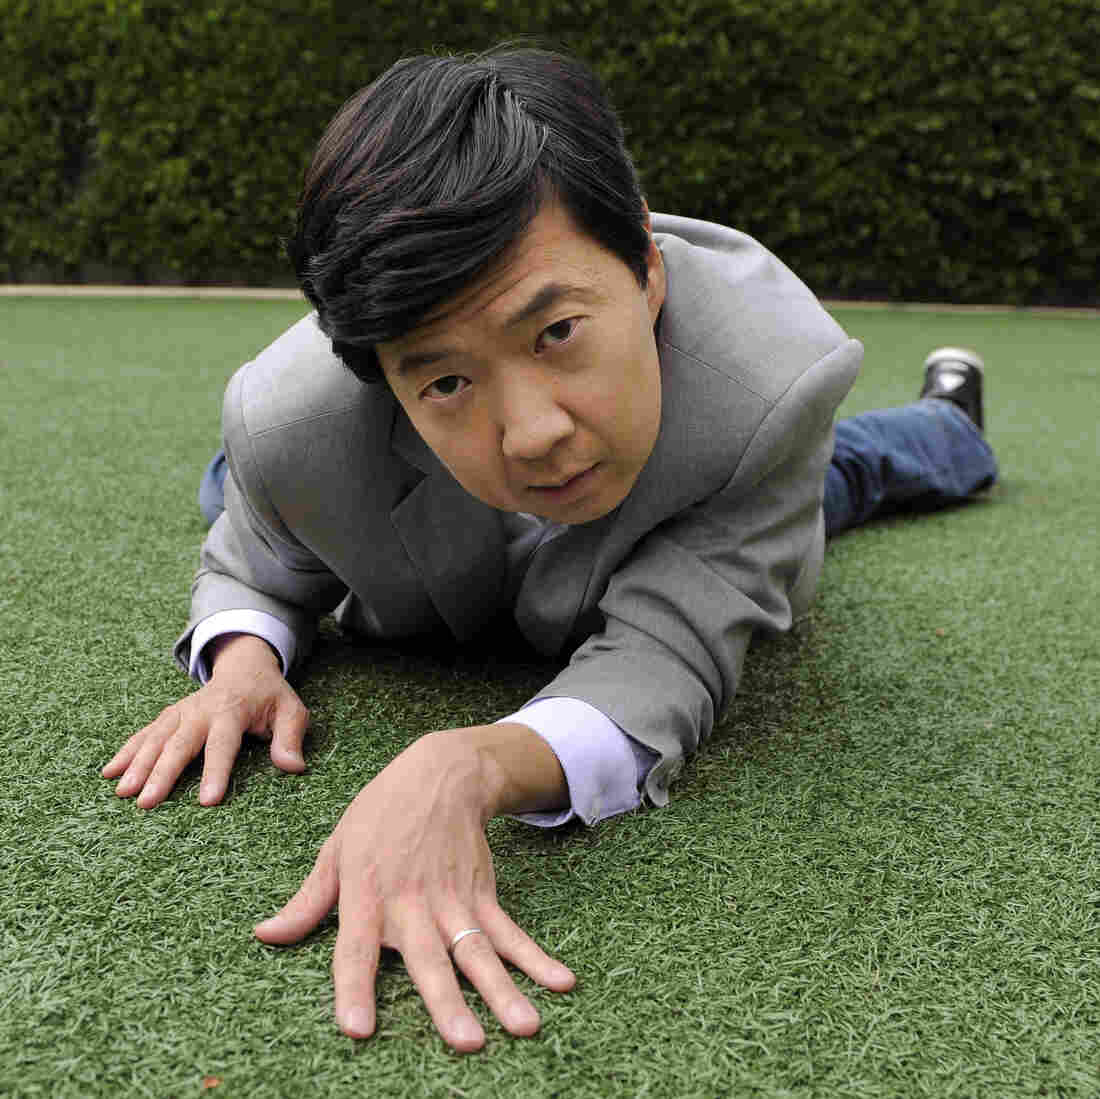 Ken Jeong: Doctor By Day, Comedian By Night